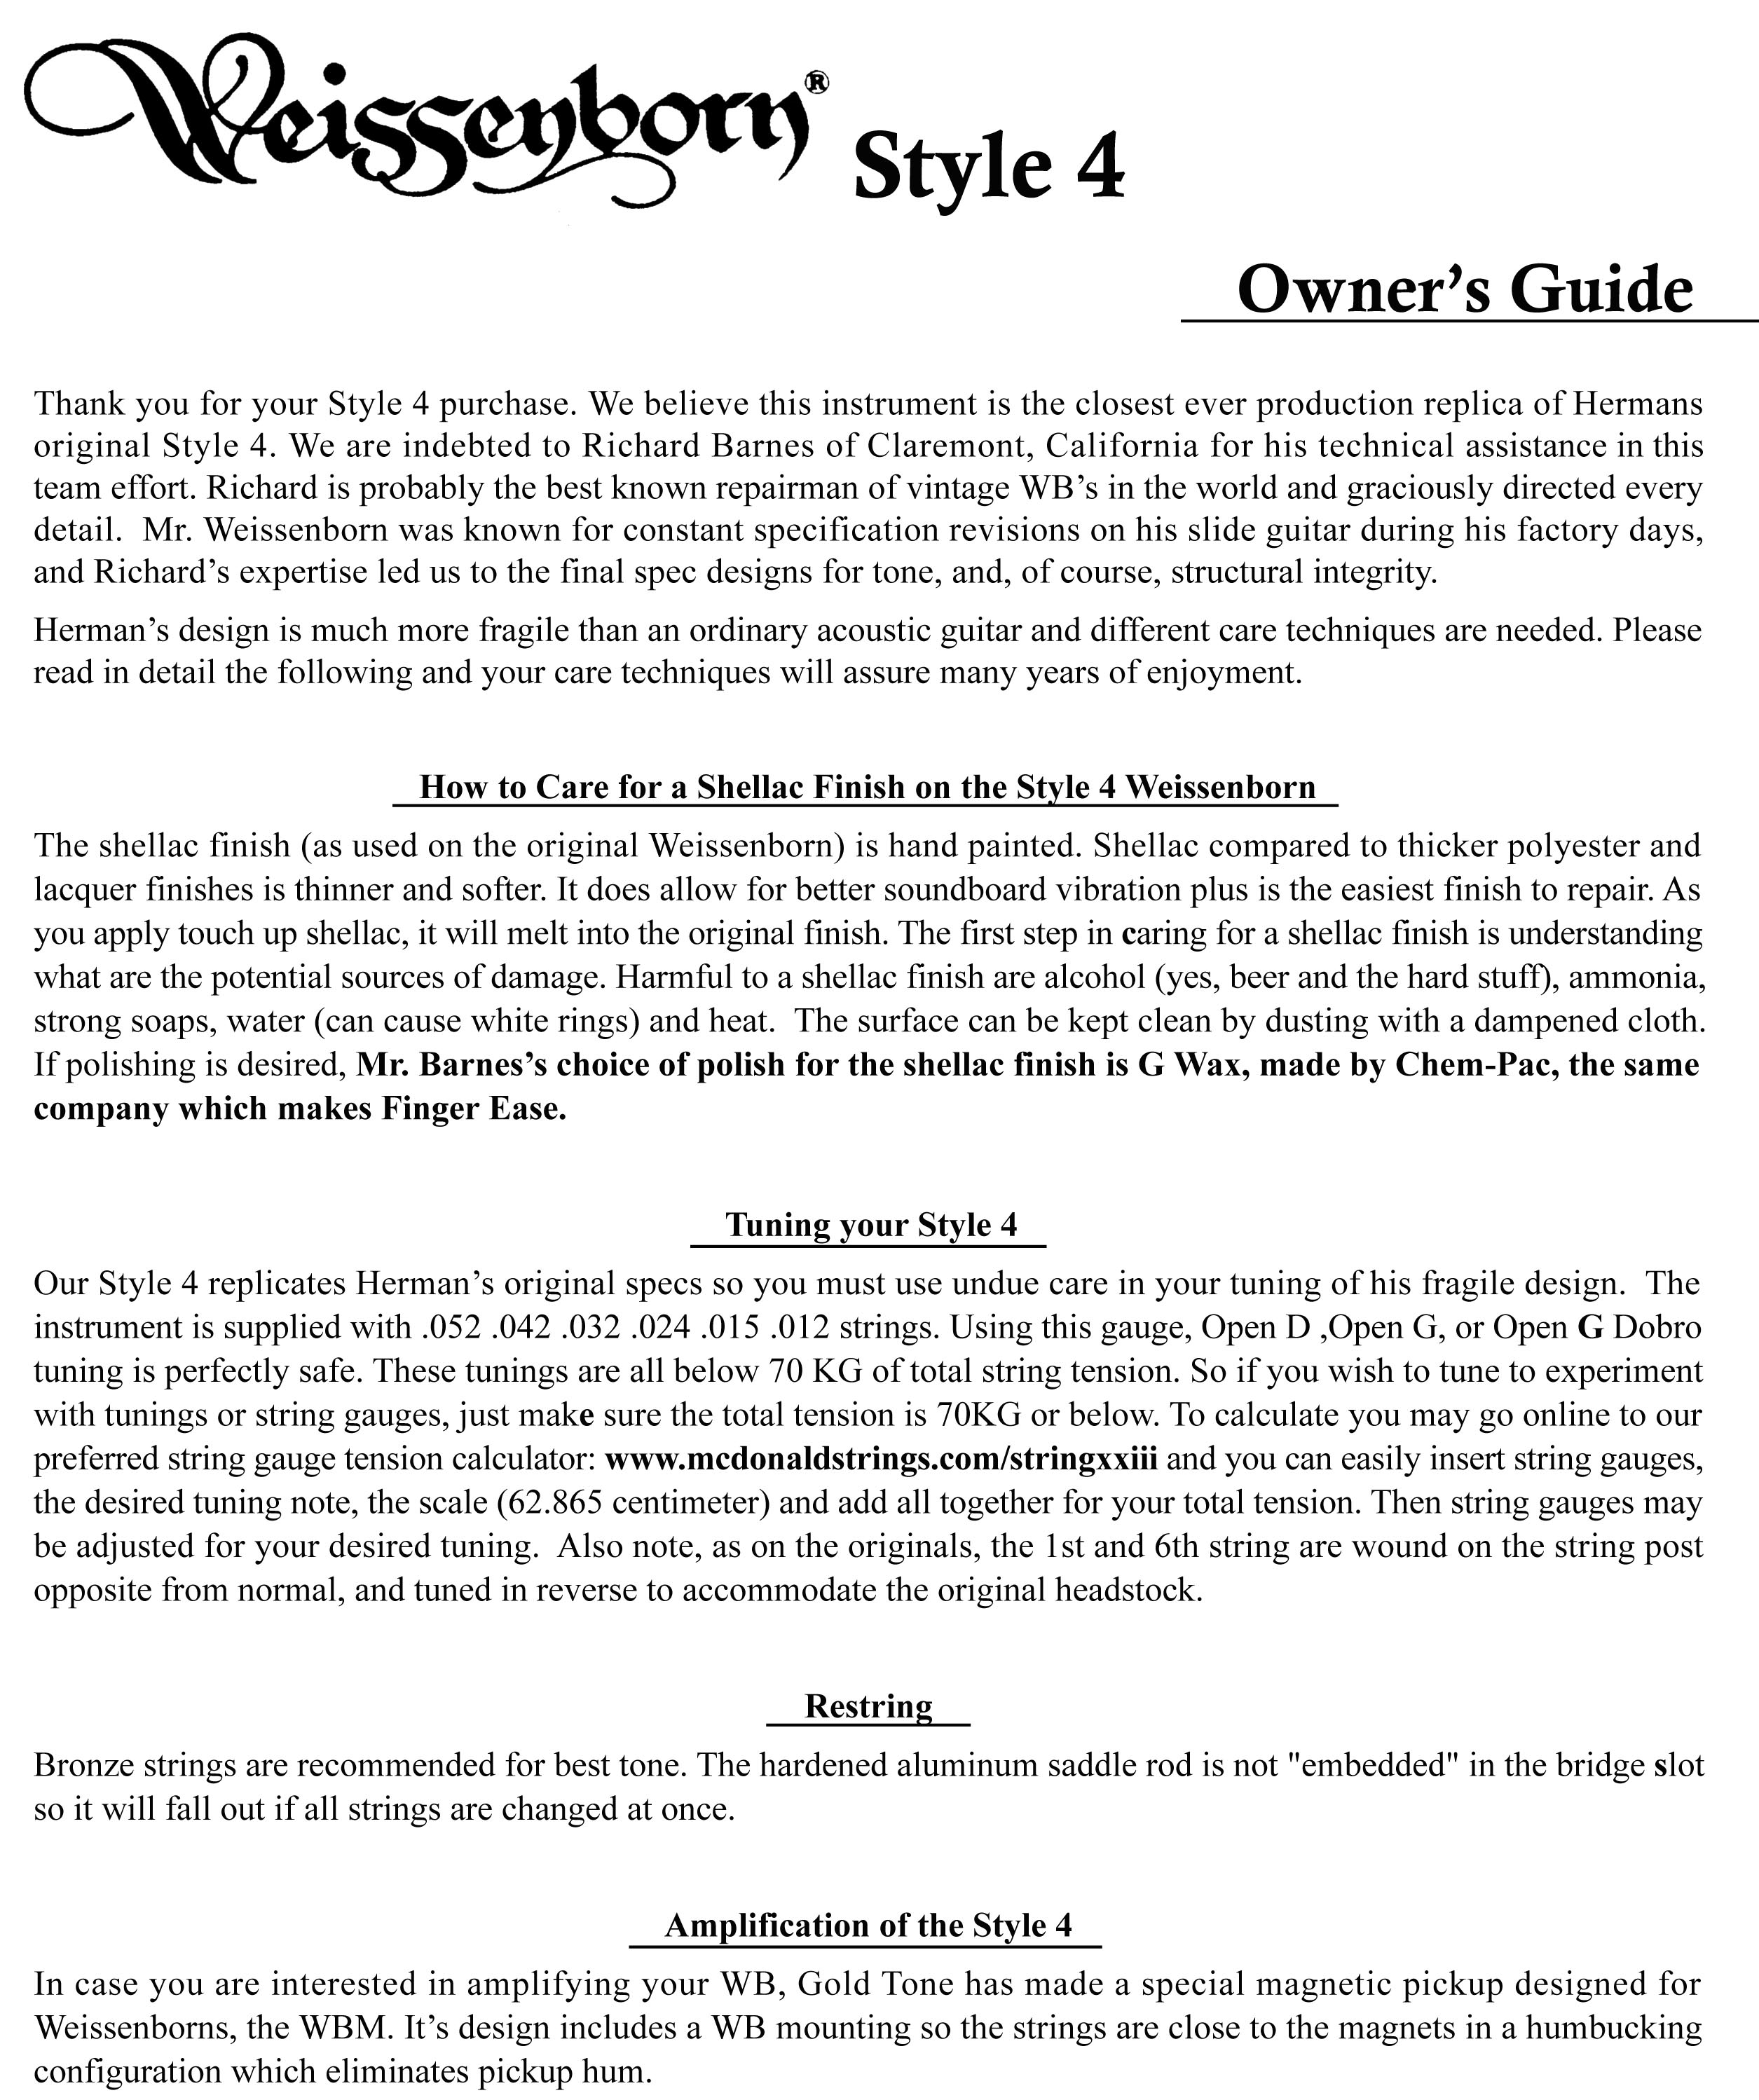 ... MicroBass String Instructions · Weissenborn Owner's Guide ...